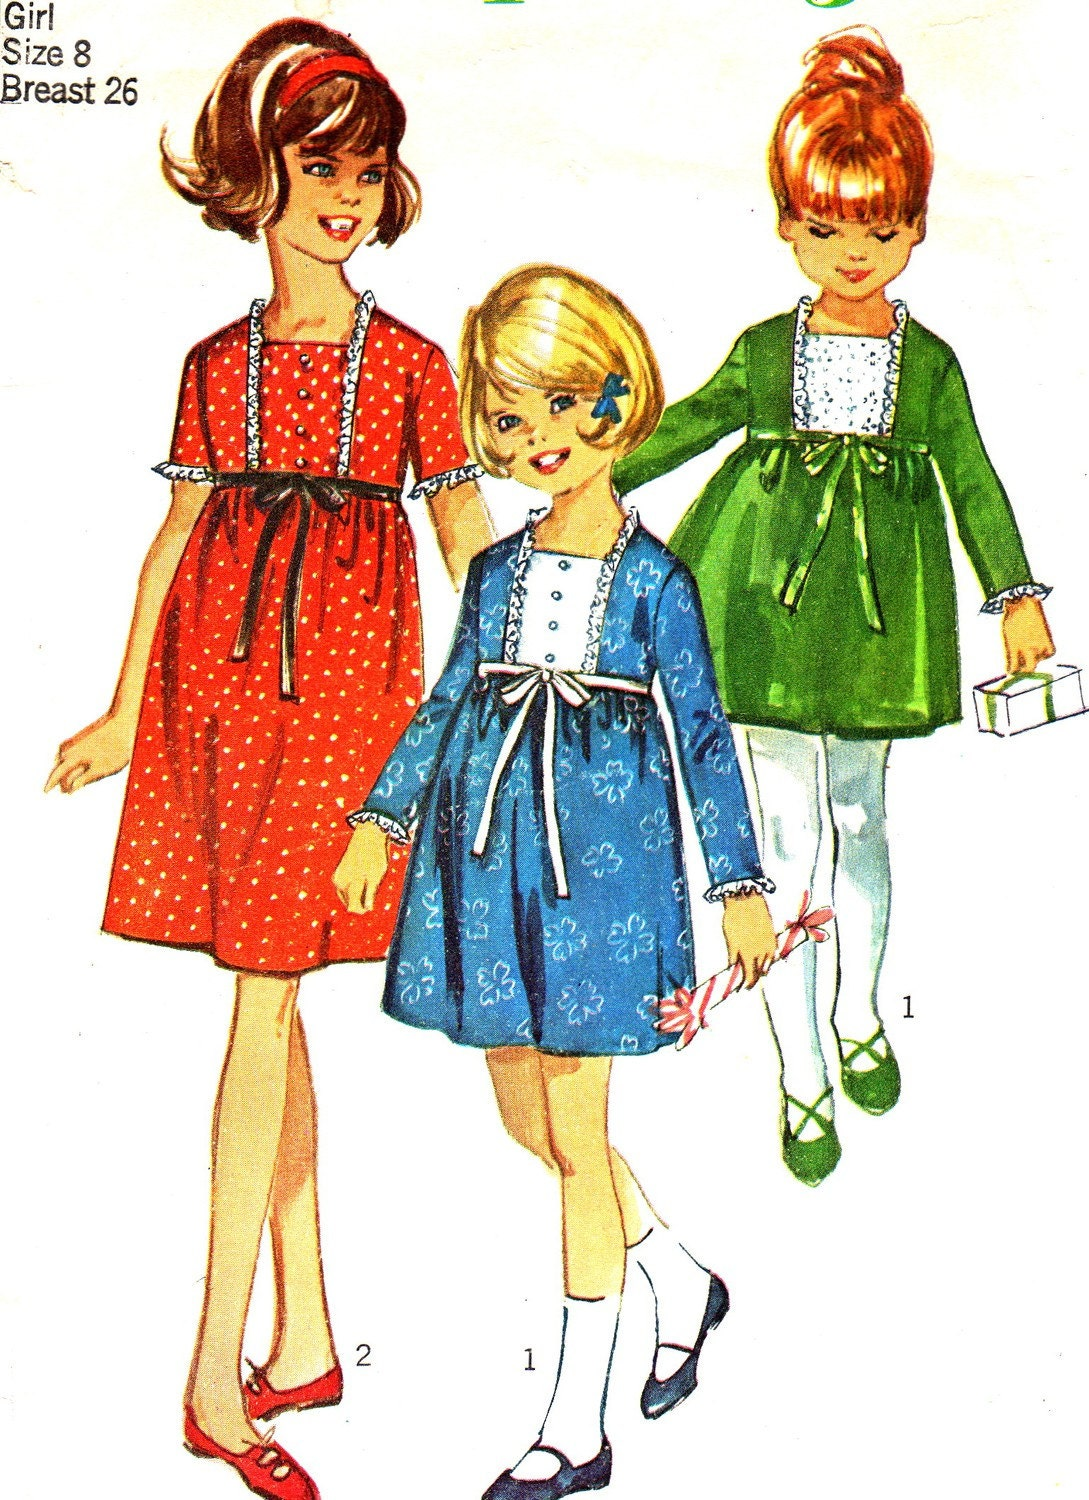 1960s Fashion for Women amp Girls  Styles Trends amp Photos